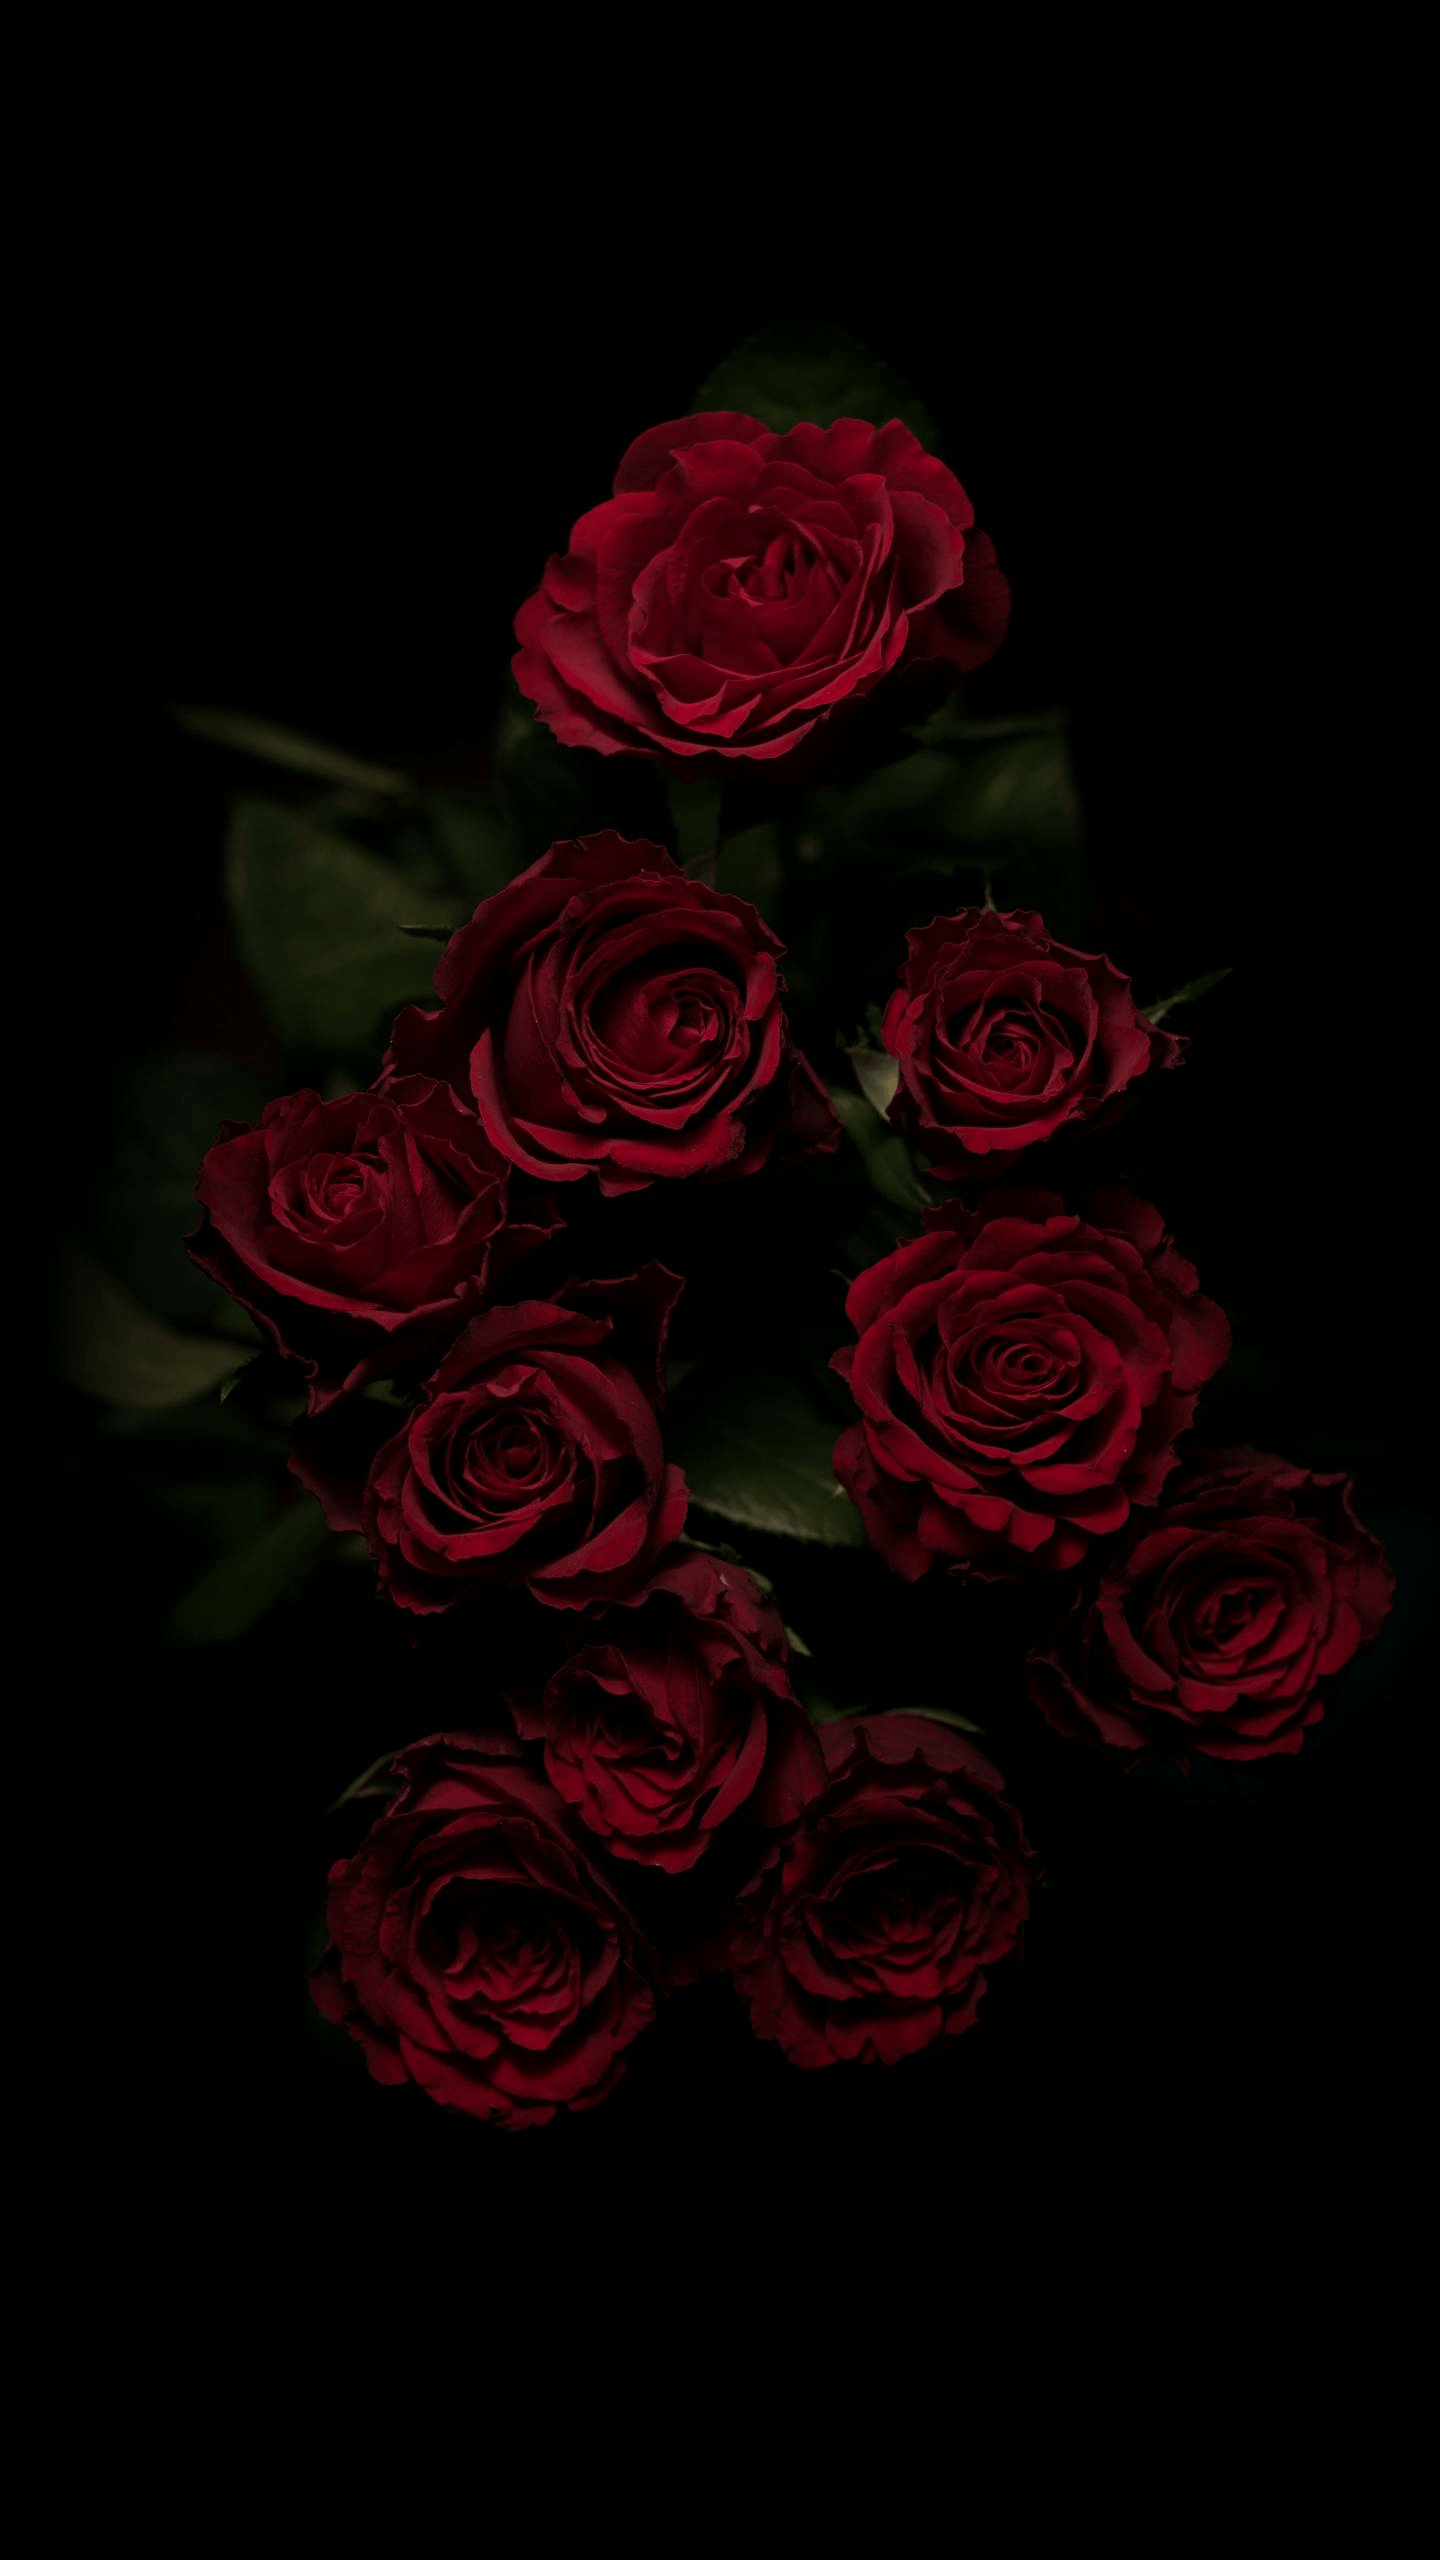 Red Rose Aesthetic Wallpapers - Wallpaper Cave